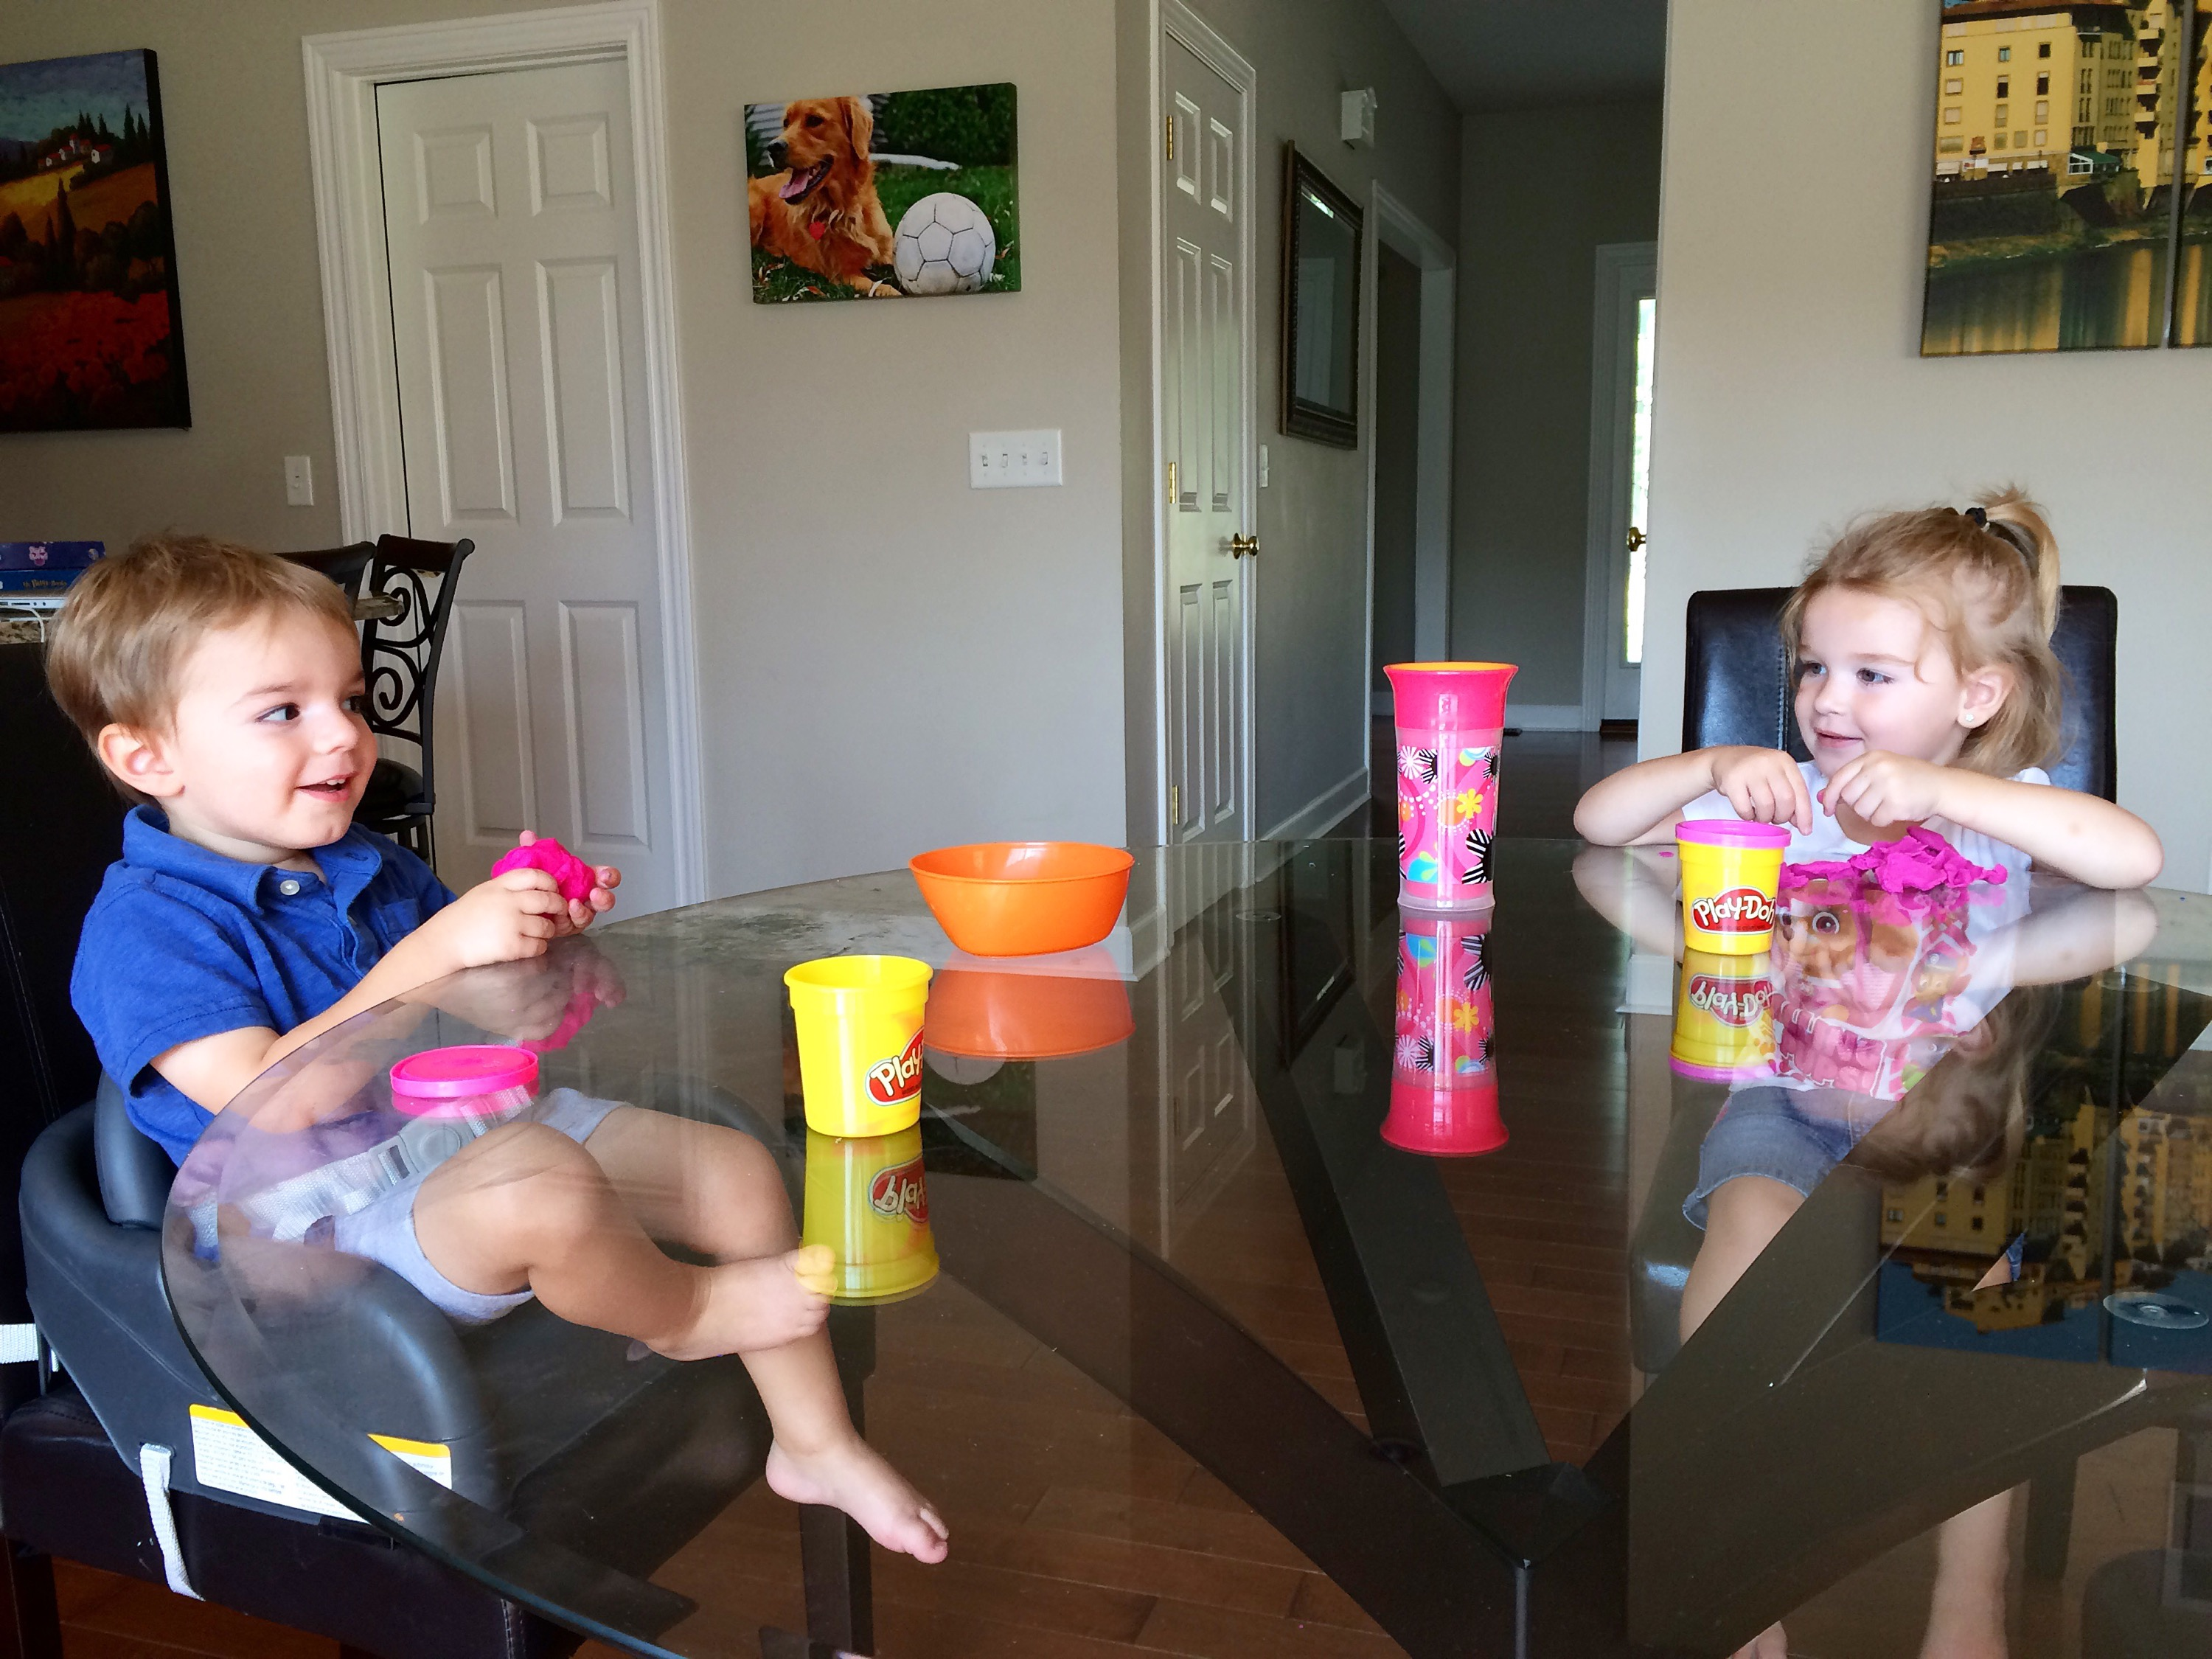 Playdate with play-doh